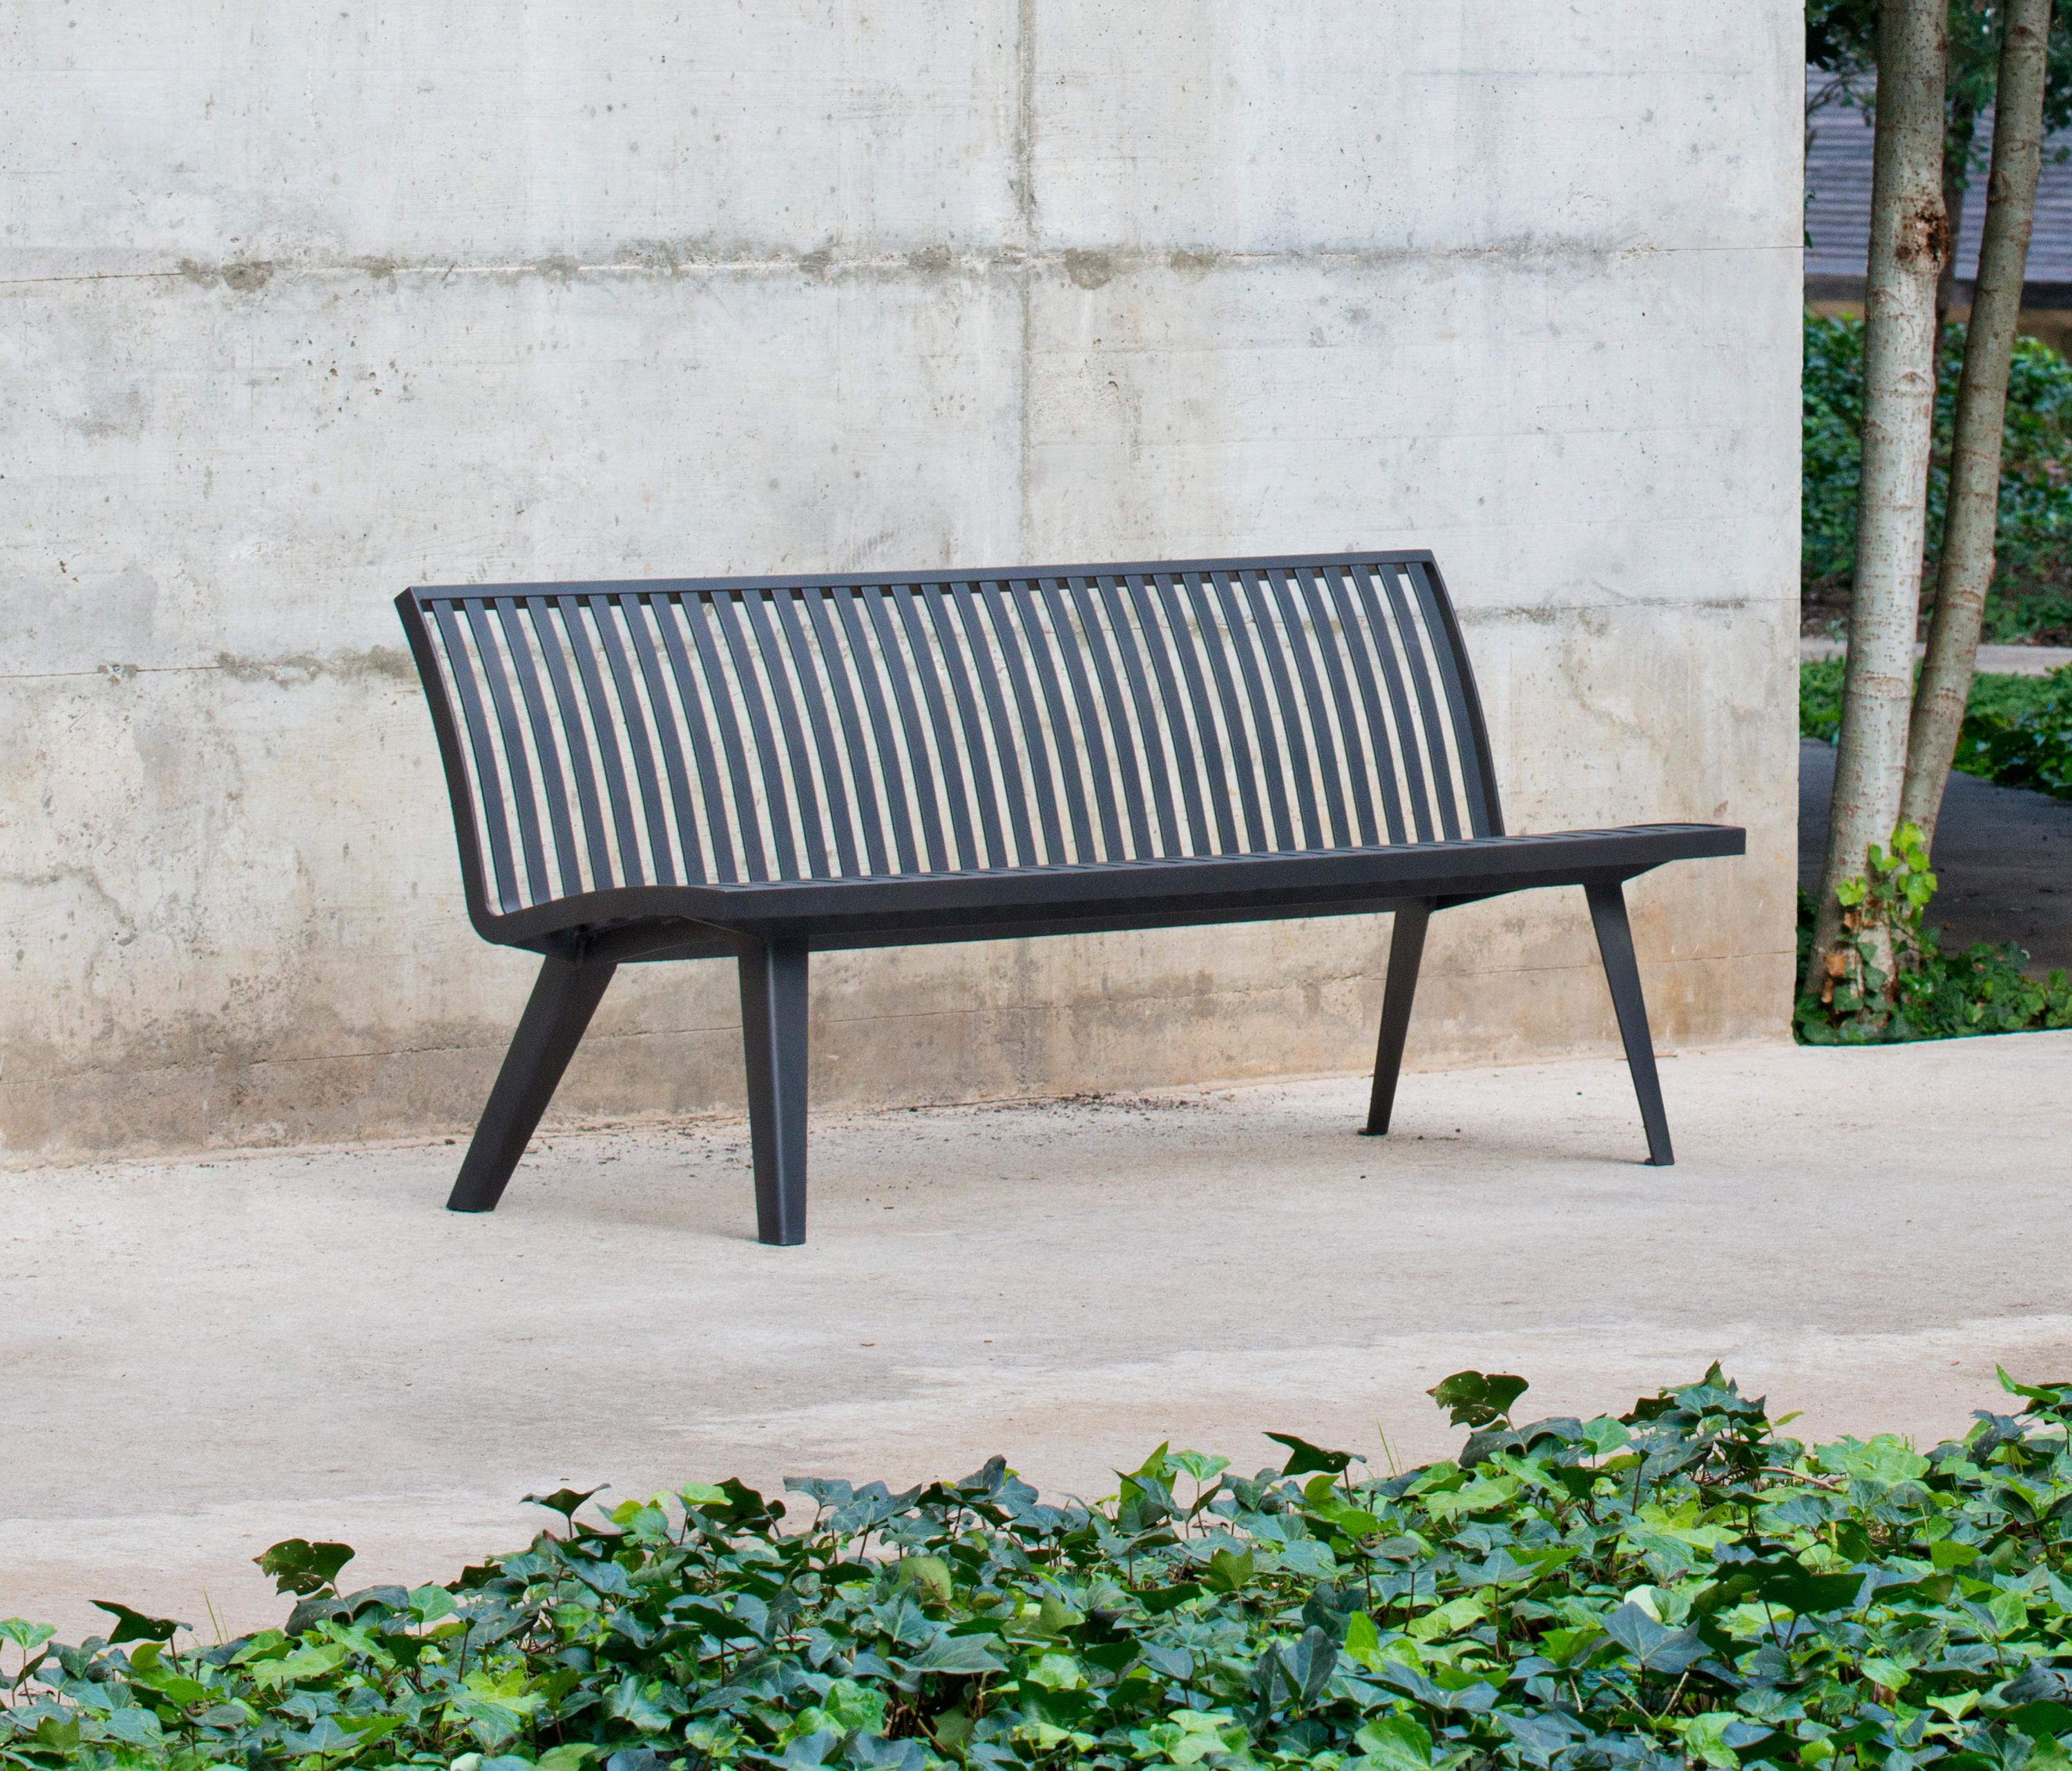 Montreal Bench By Area Architonic Nowonarchitonic Interior